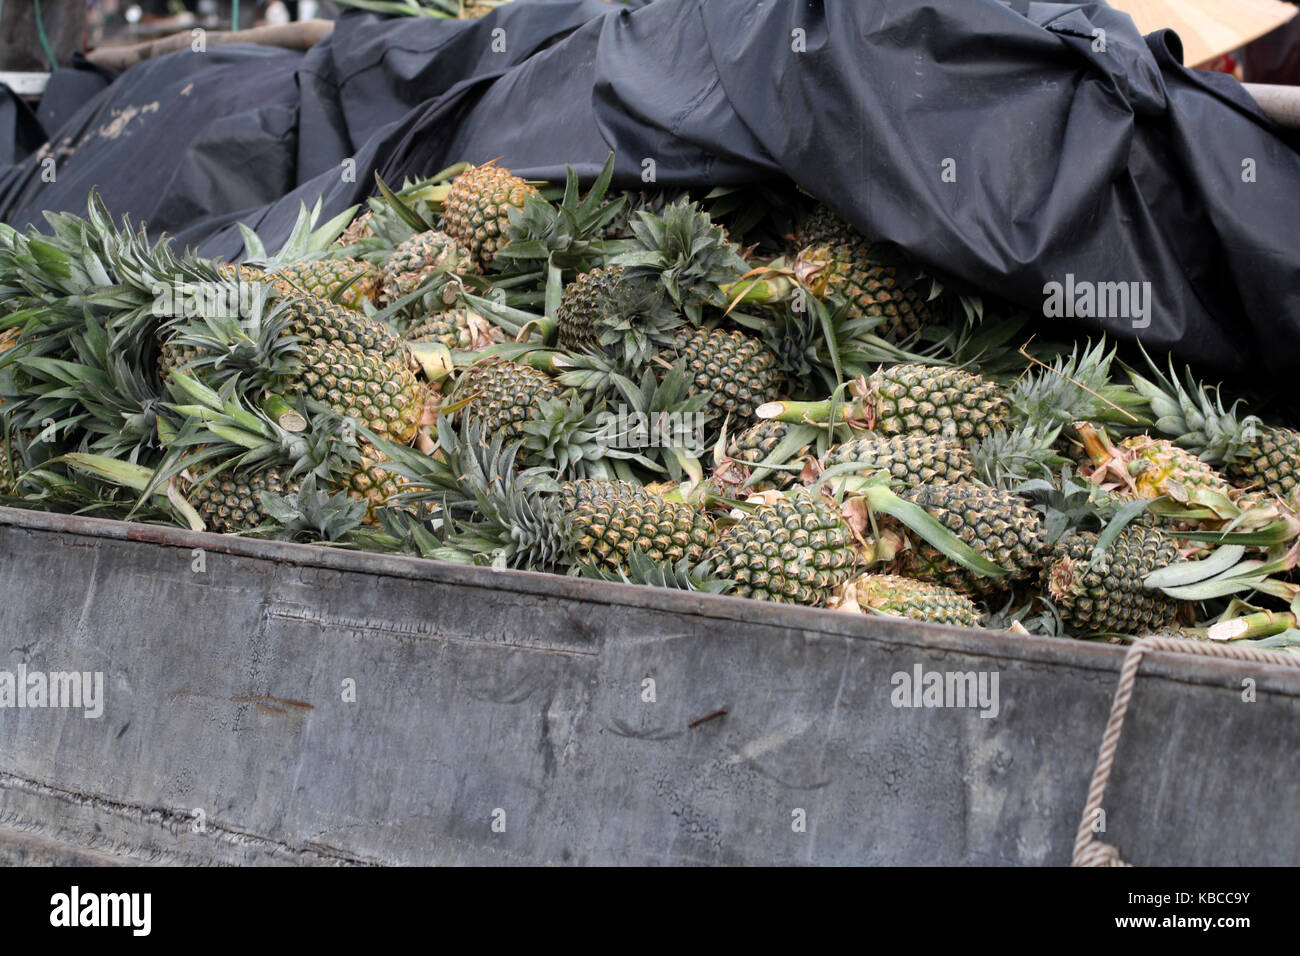 Pineapples on boat at mekong delta - Stock Image